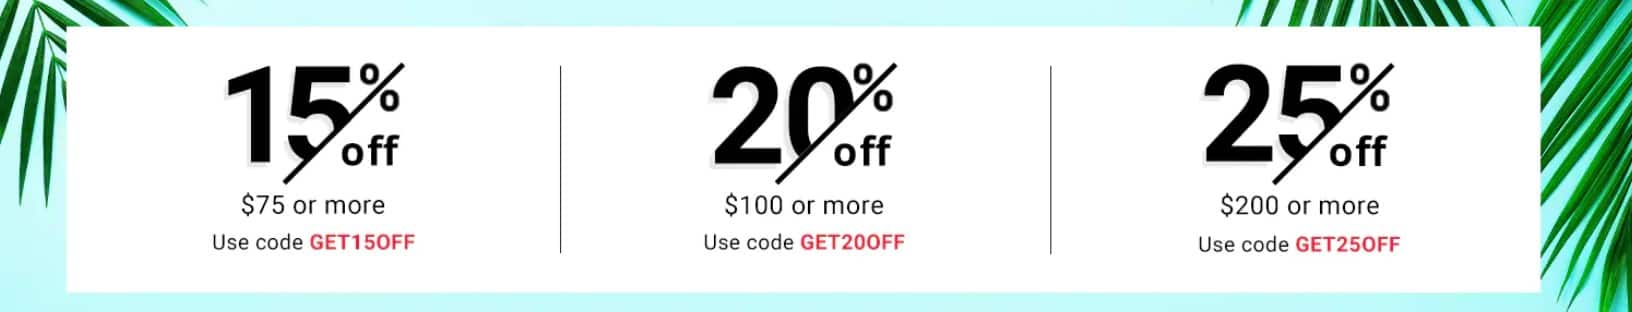 25% off Nike, Adidas, for $200 or more